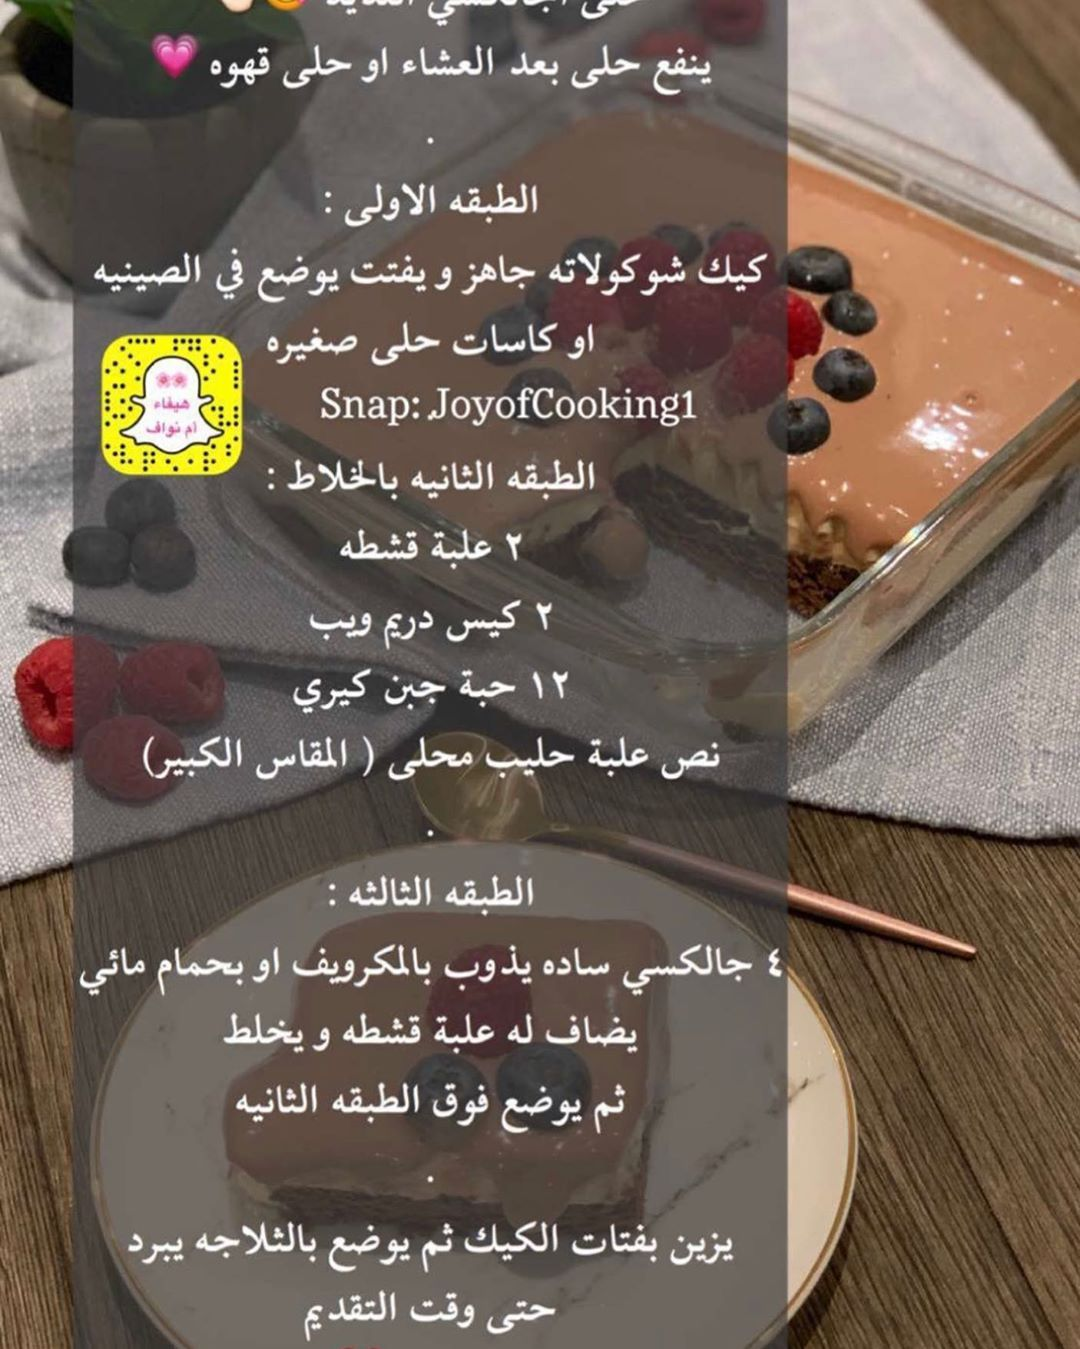 Pin By Tfa9il 123 On حلا وحلويات Cookout Food Food Drinks Dessert Yummy Food Dessert